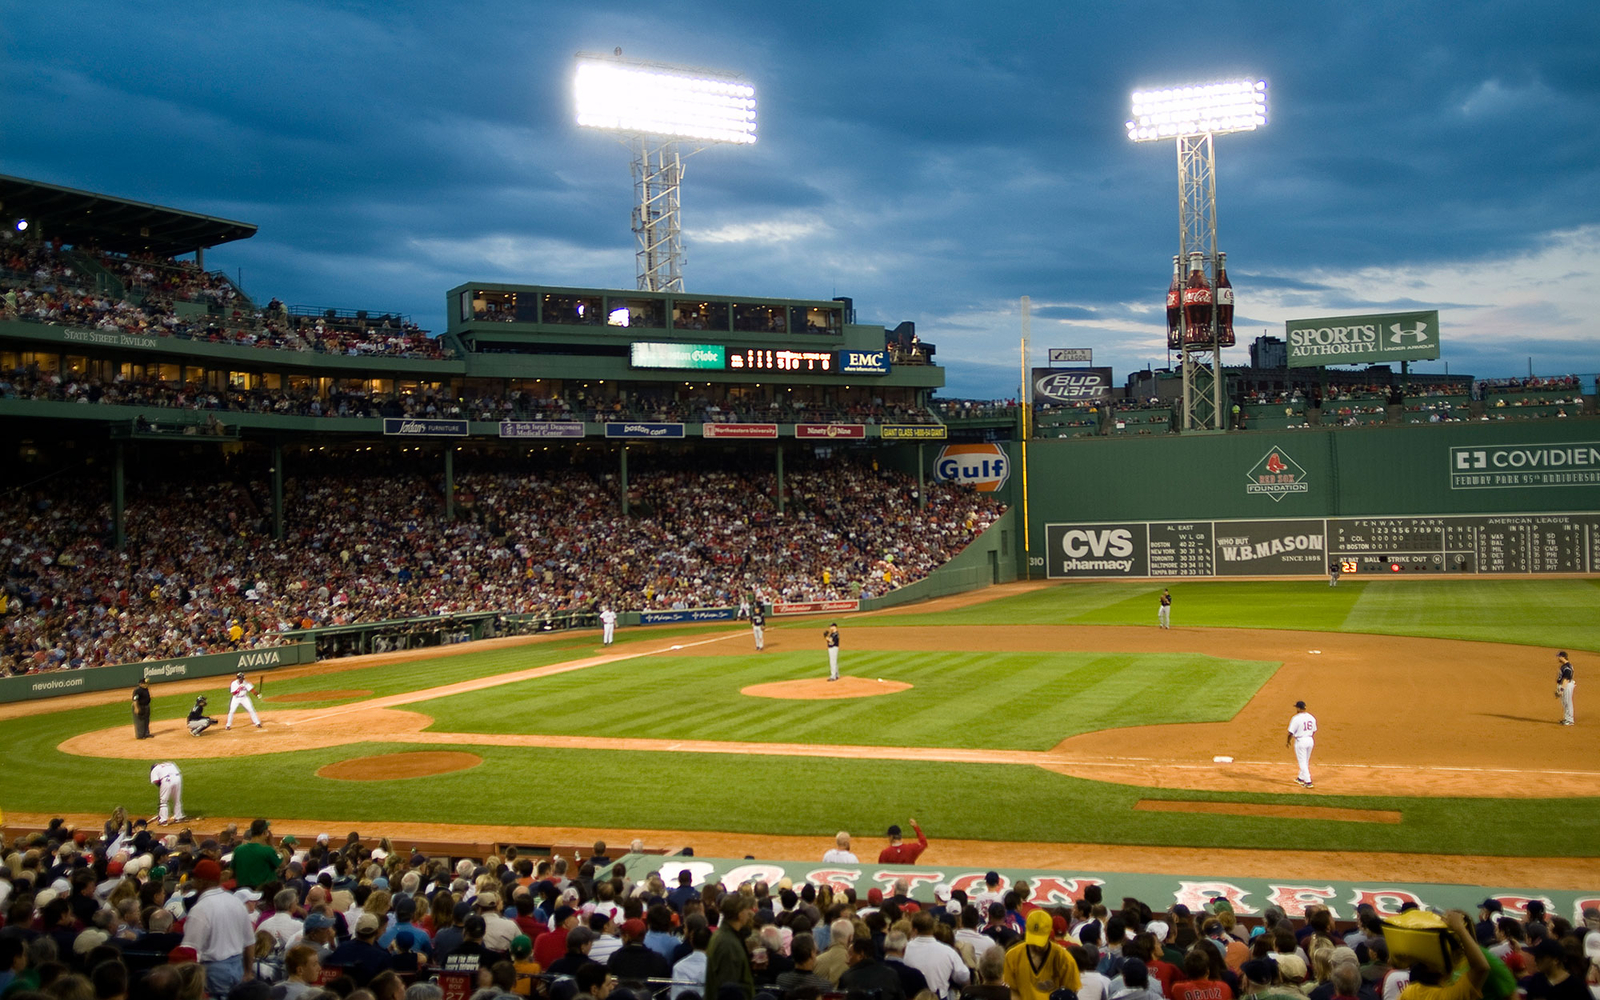 Fenway Park: Boston Red Sox